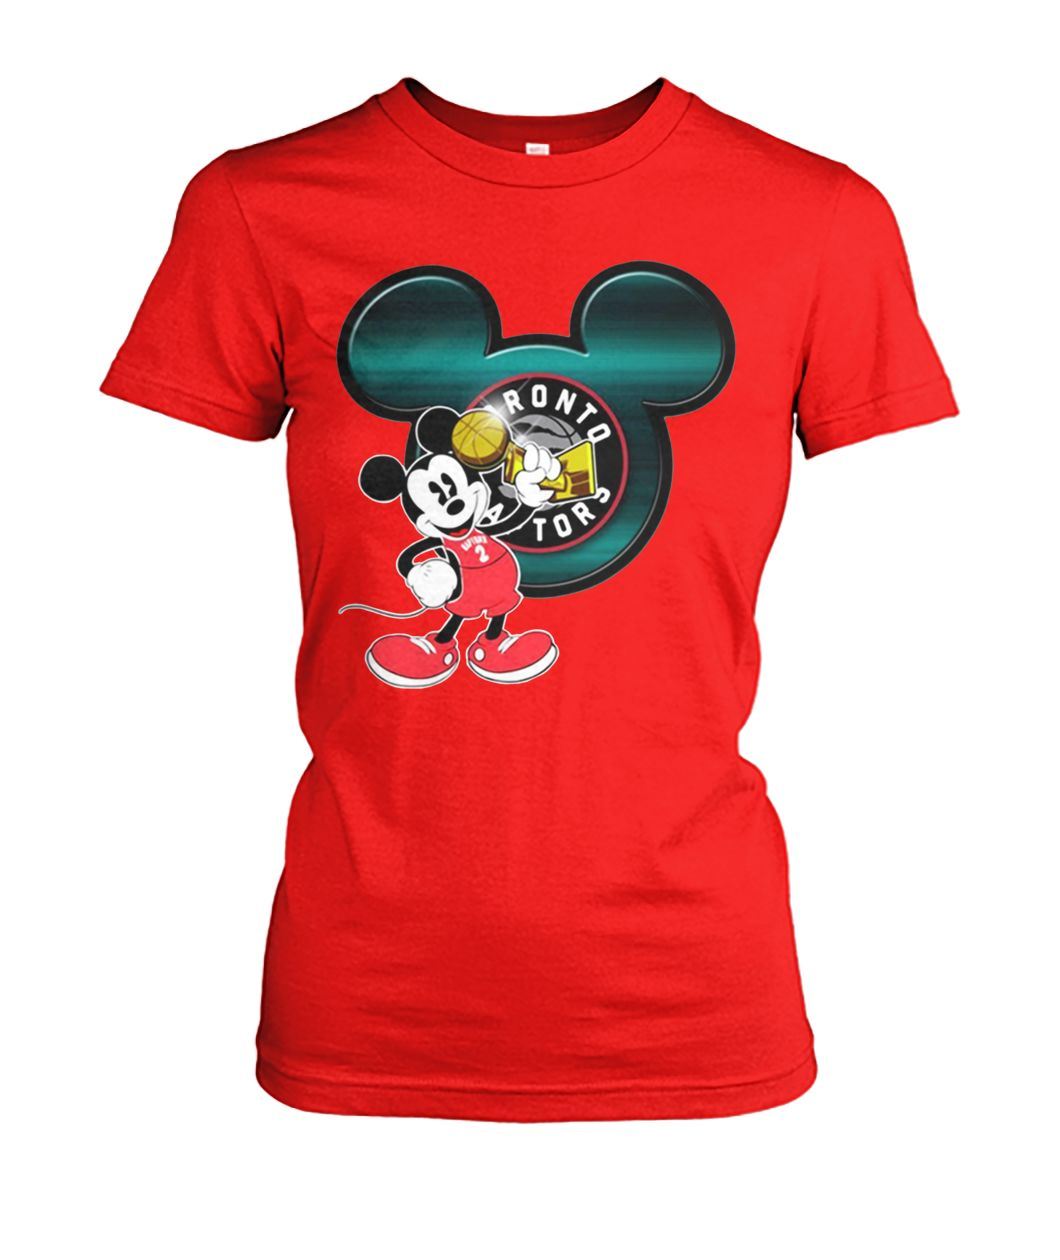 Love toronto raptors and mickey mouse disney women's crew tee